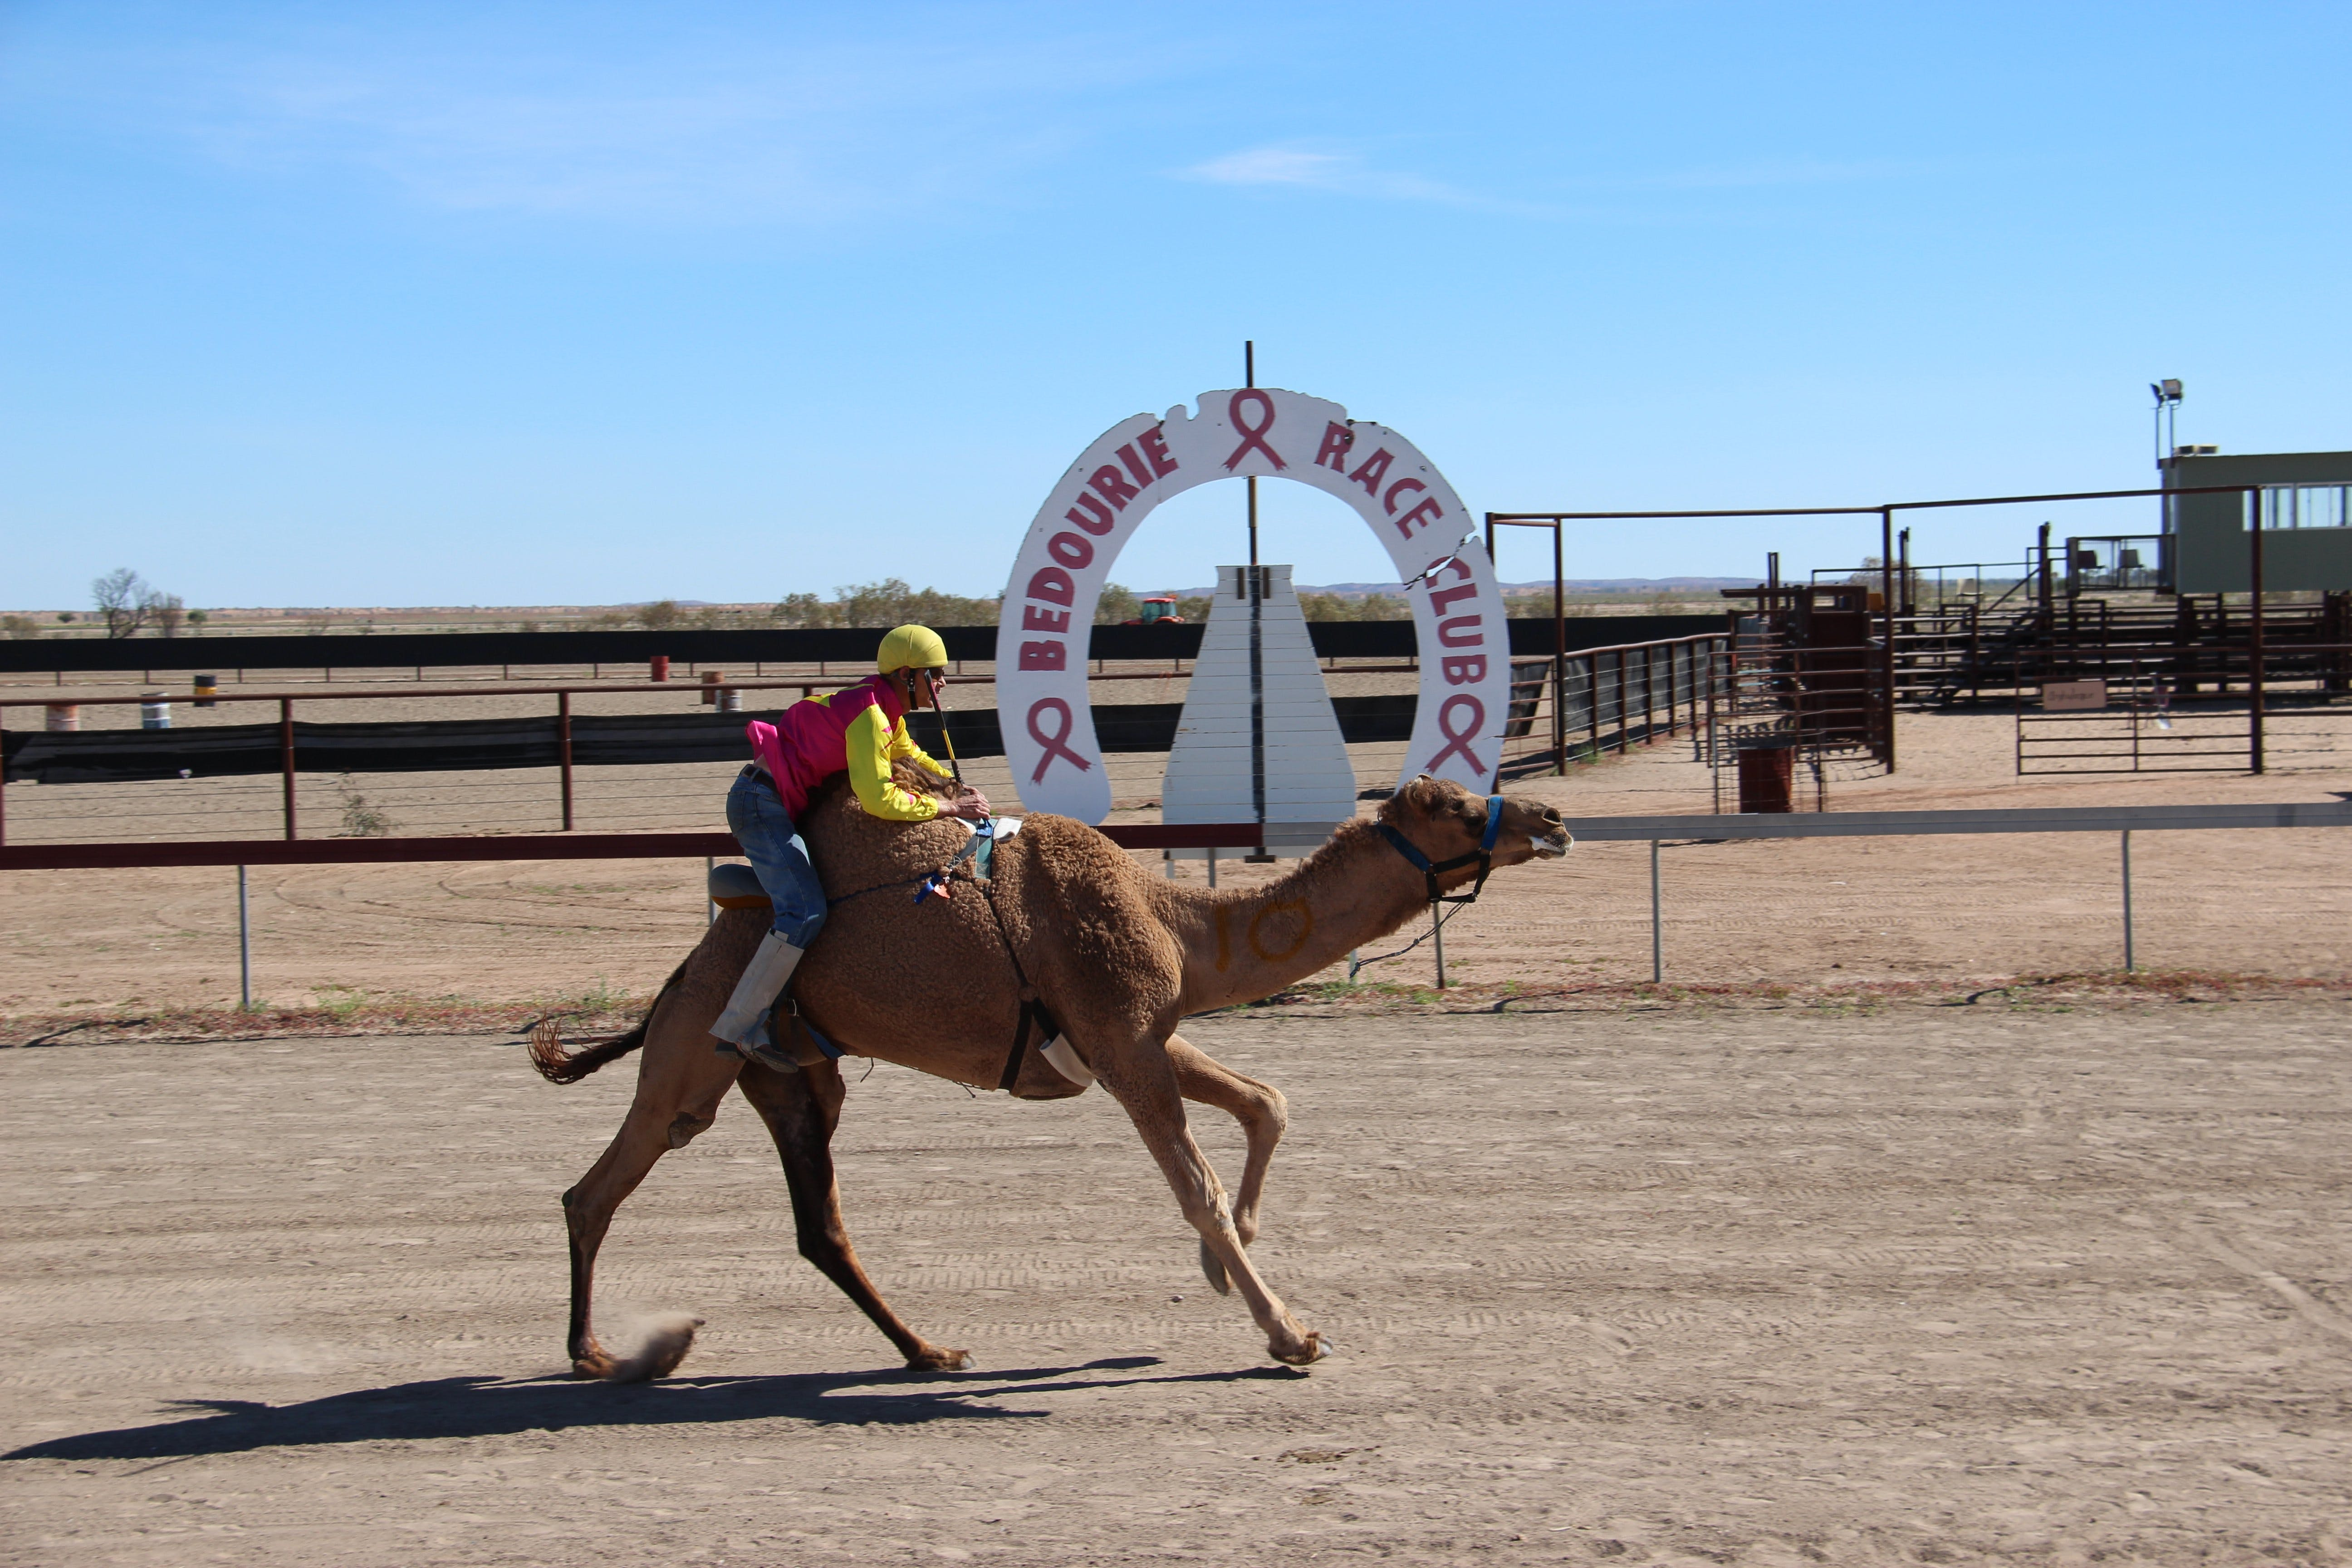 Bedourie Camel and Pig Races and Camp oven Cook-off - Accommodation Kalgoorlie